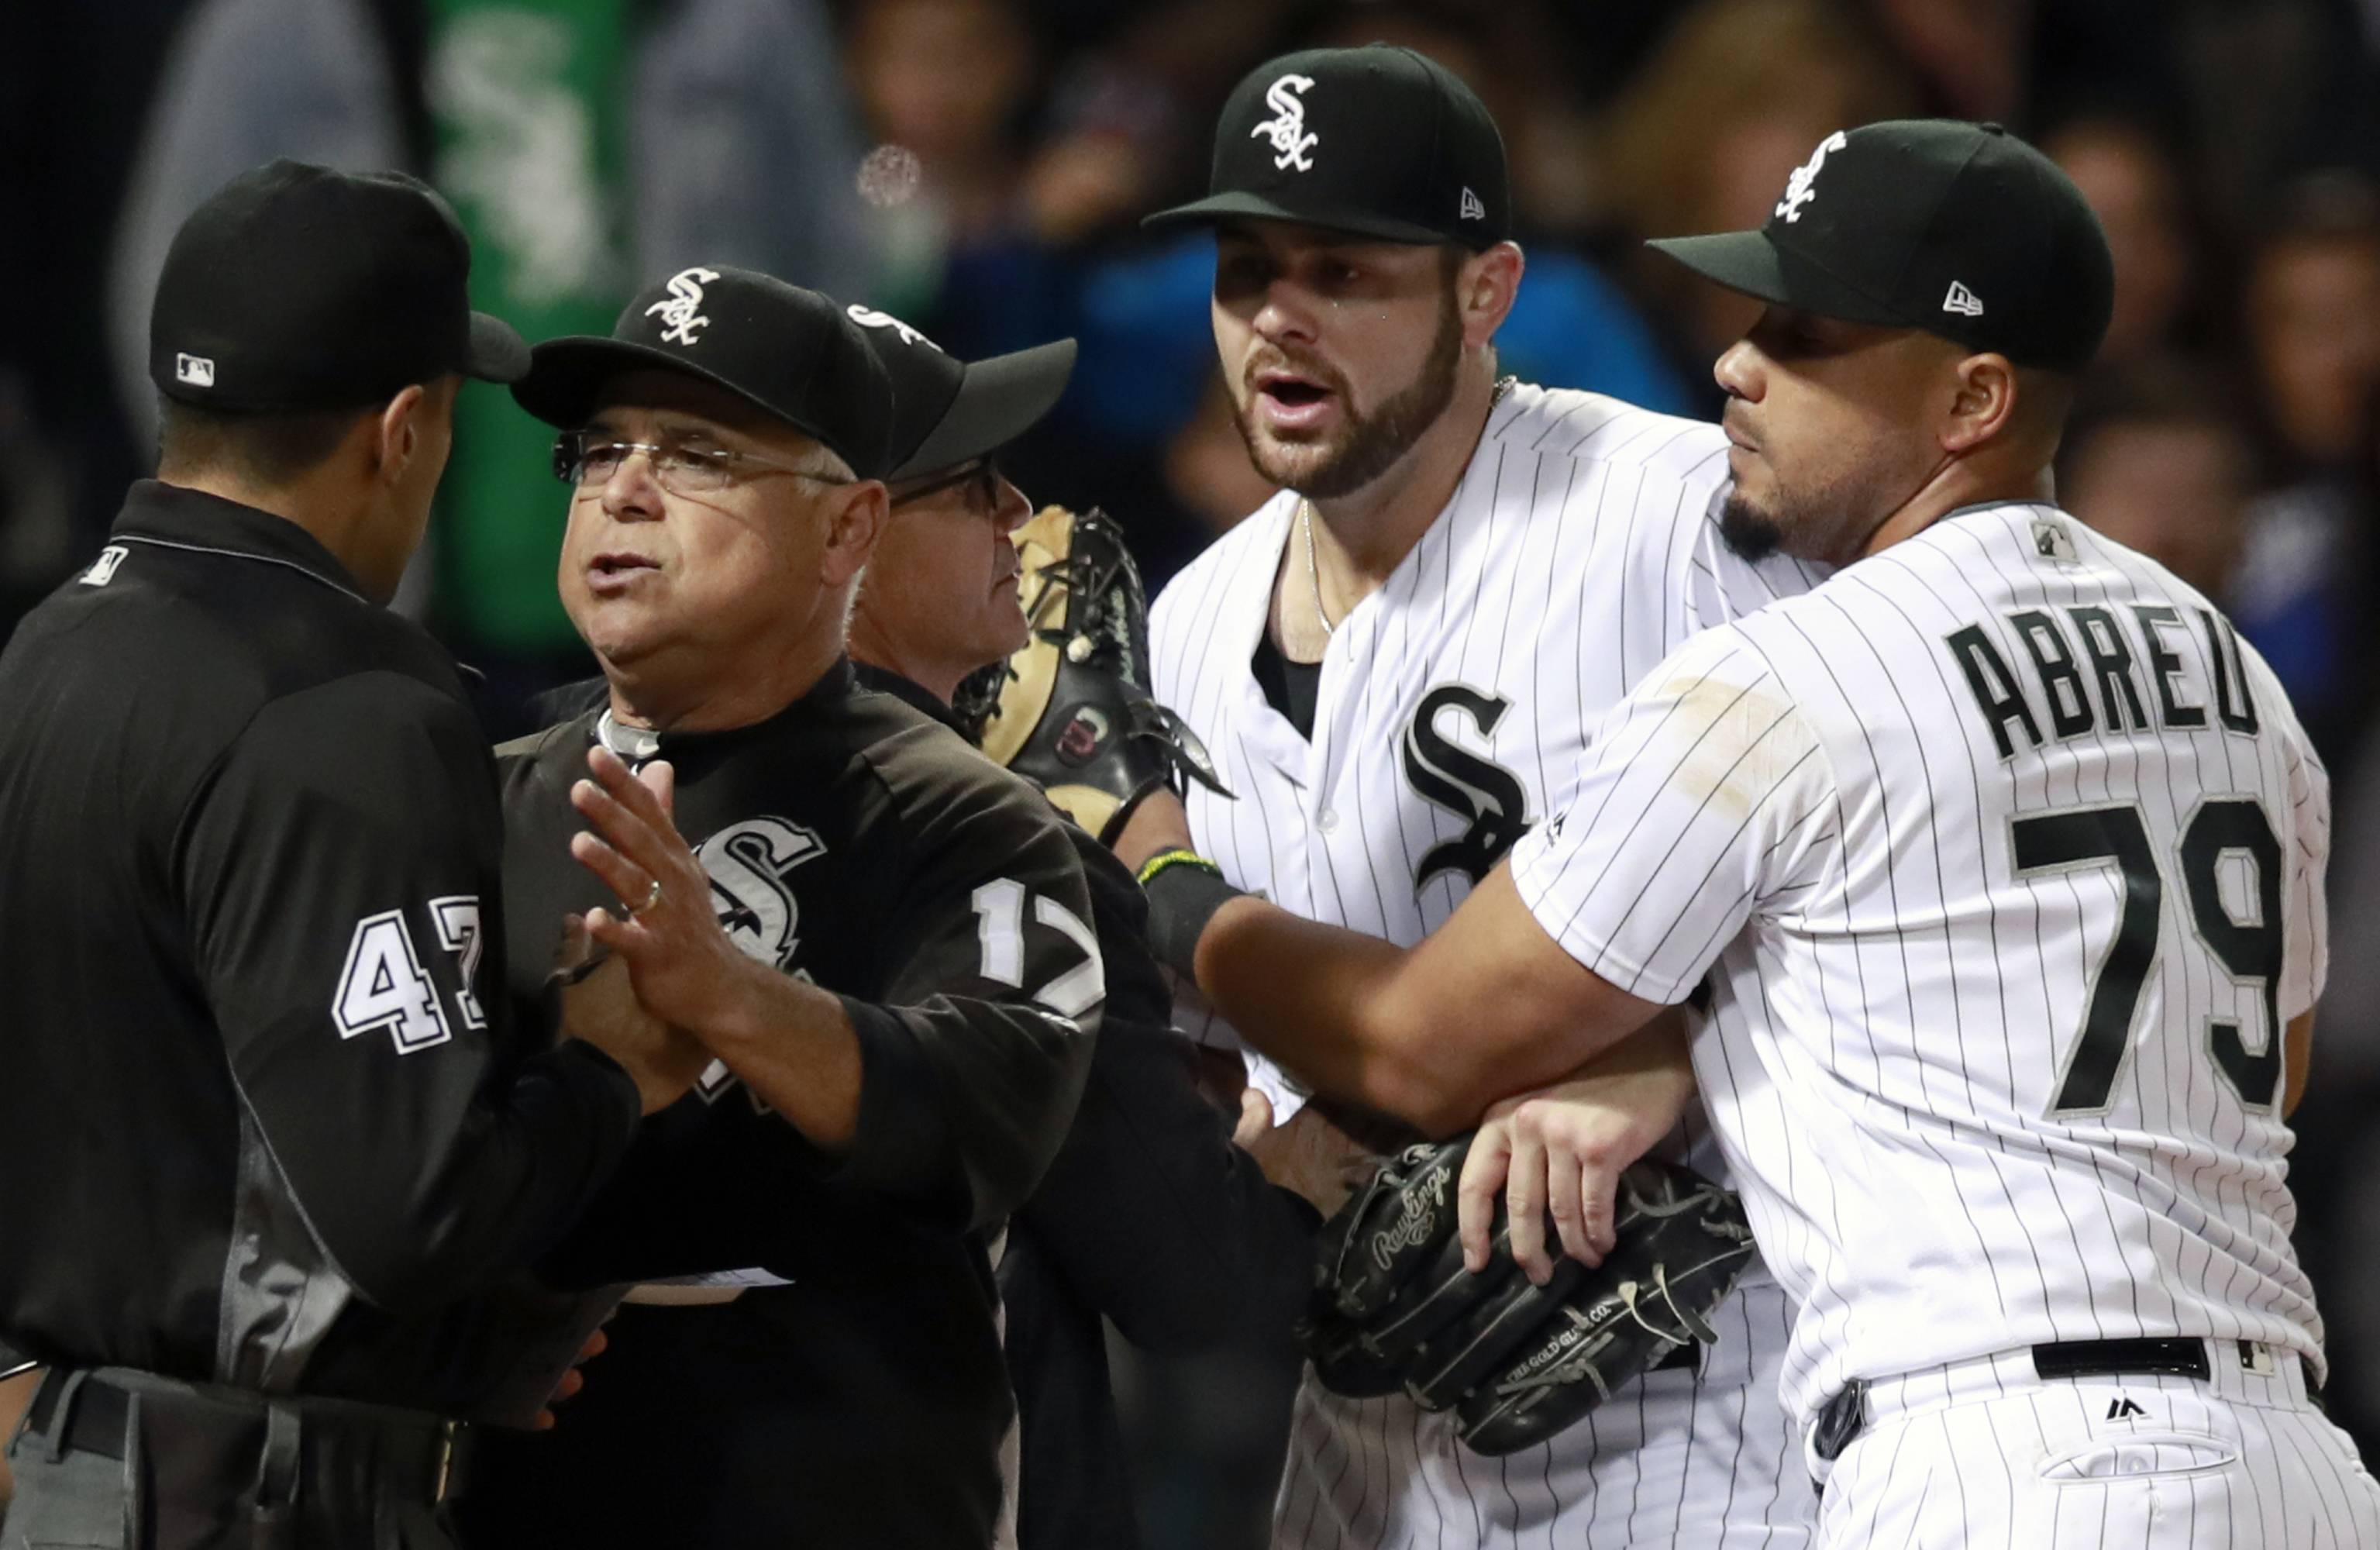 Chicago White Sox manager Rick Renteria (17) argues with umpire Gabe Morales (47) as Jose Abreu (79) holds back starting pitcher Lucas Giolito after Giolito was thrown out of a baseball game by Morales during the sixth inning against the San Francisco Giants in Chicago, Friday, Sept. 8, 2017. (AP Photo/Jeff Haynes)